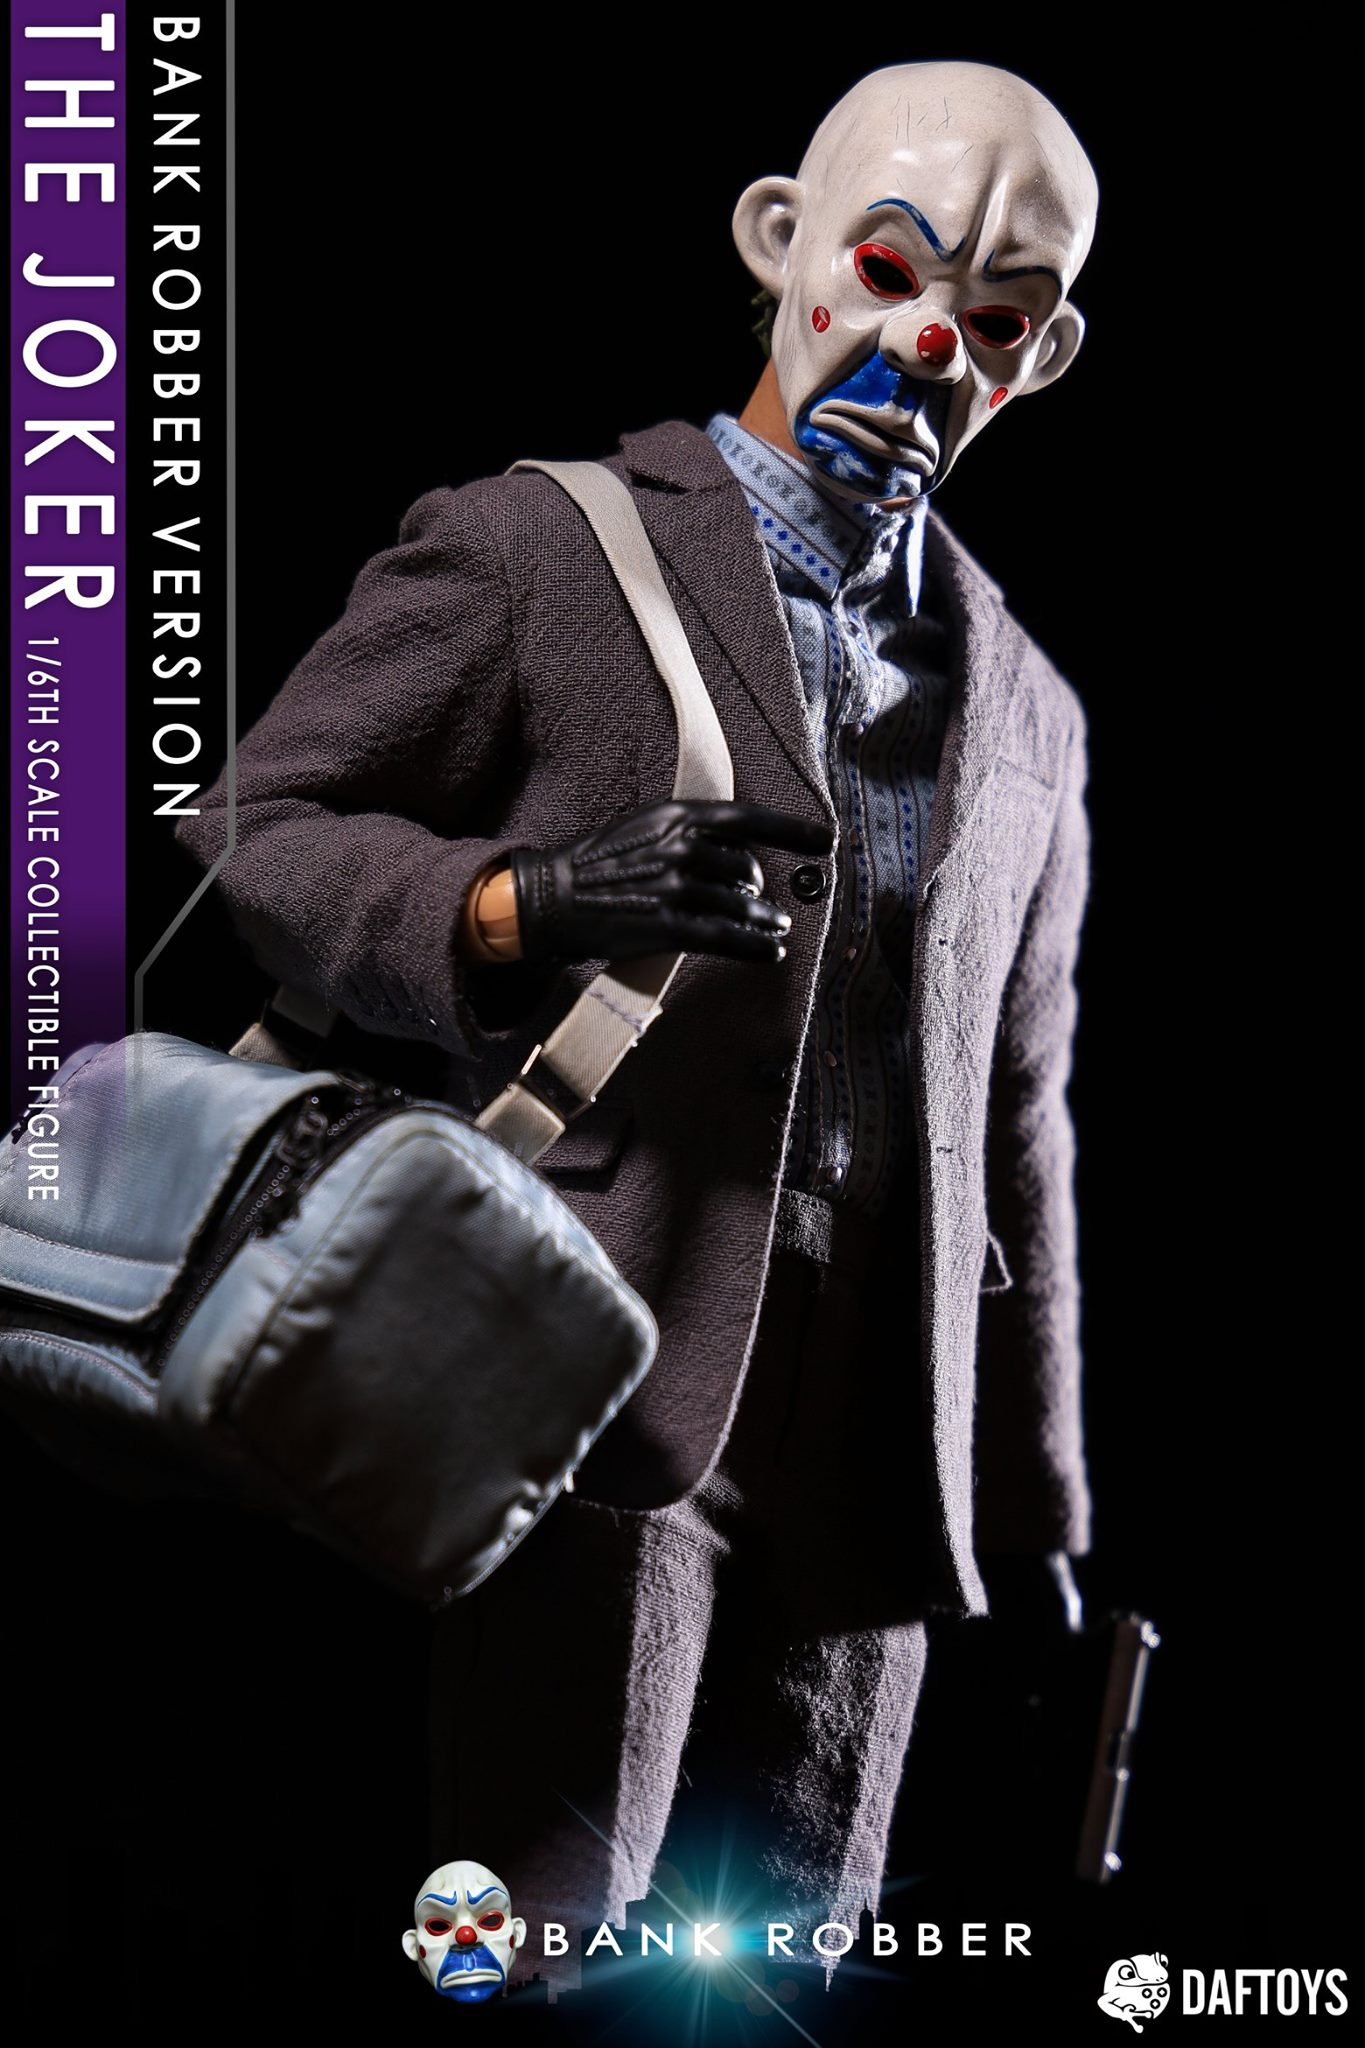 Bank Robber Clown Outfit & Head Sculpt Set